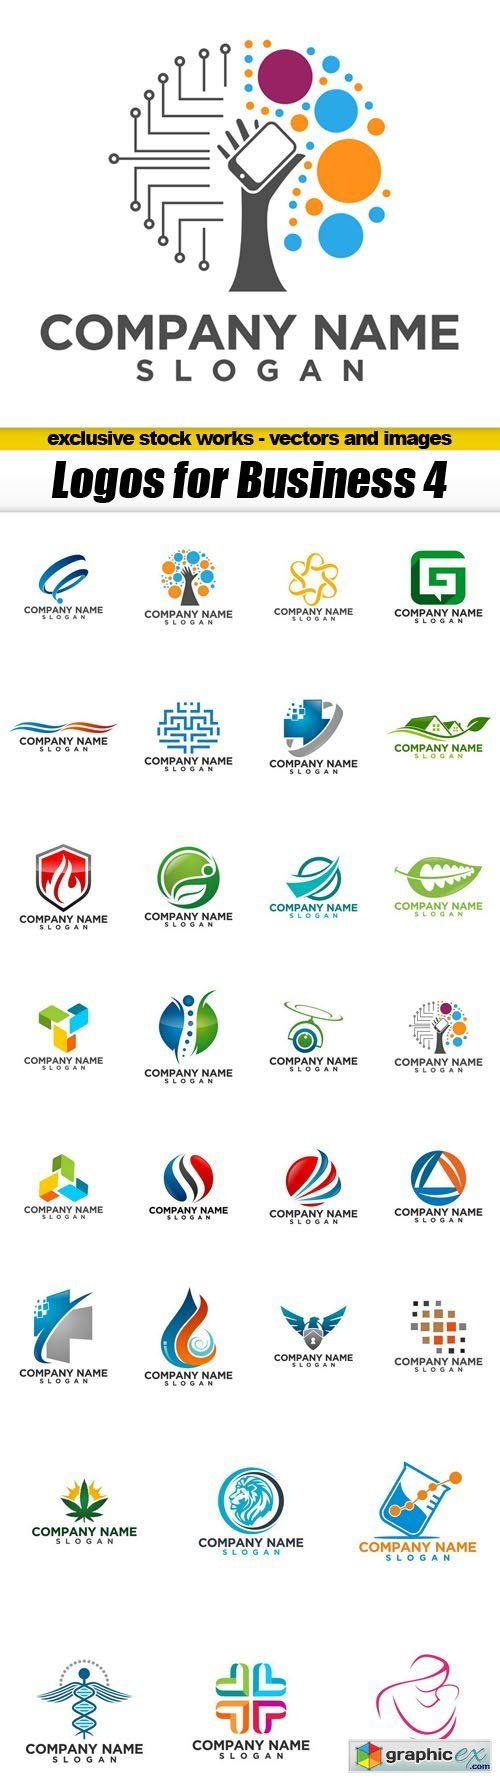 Logos for Business 4 - 30xEPS